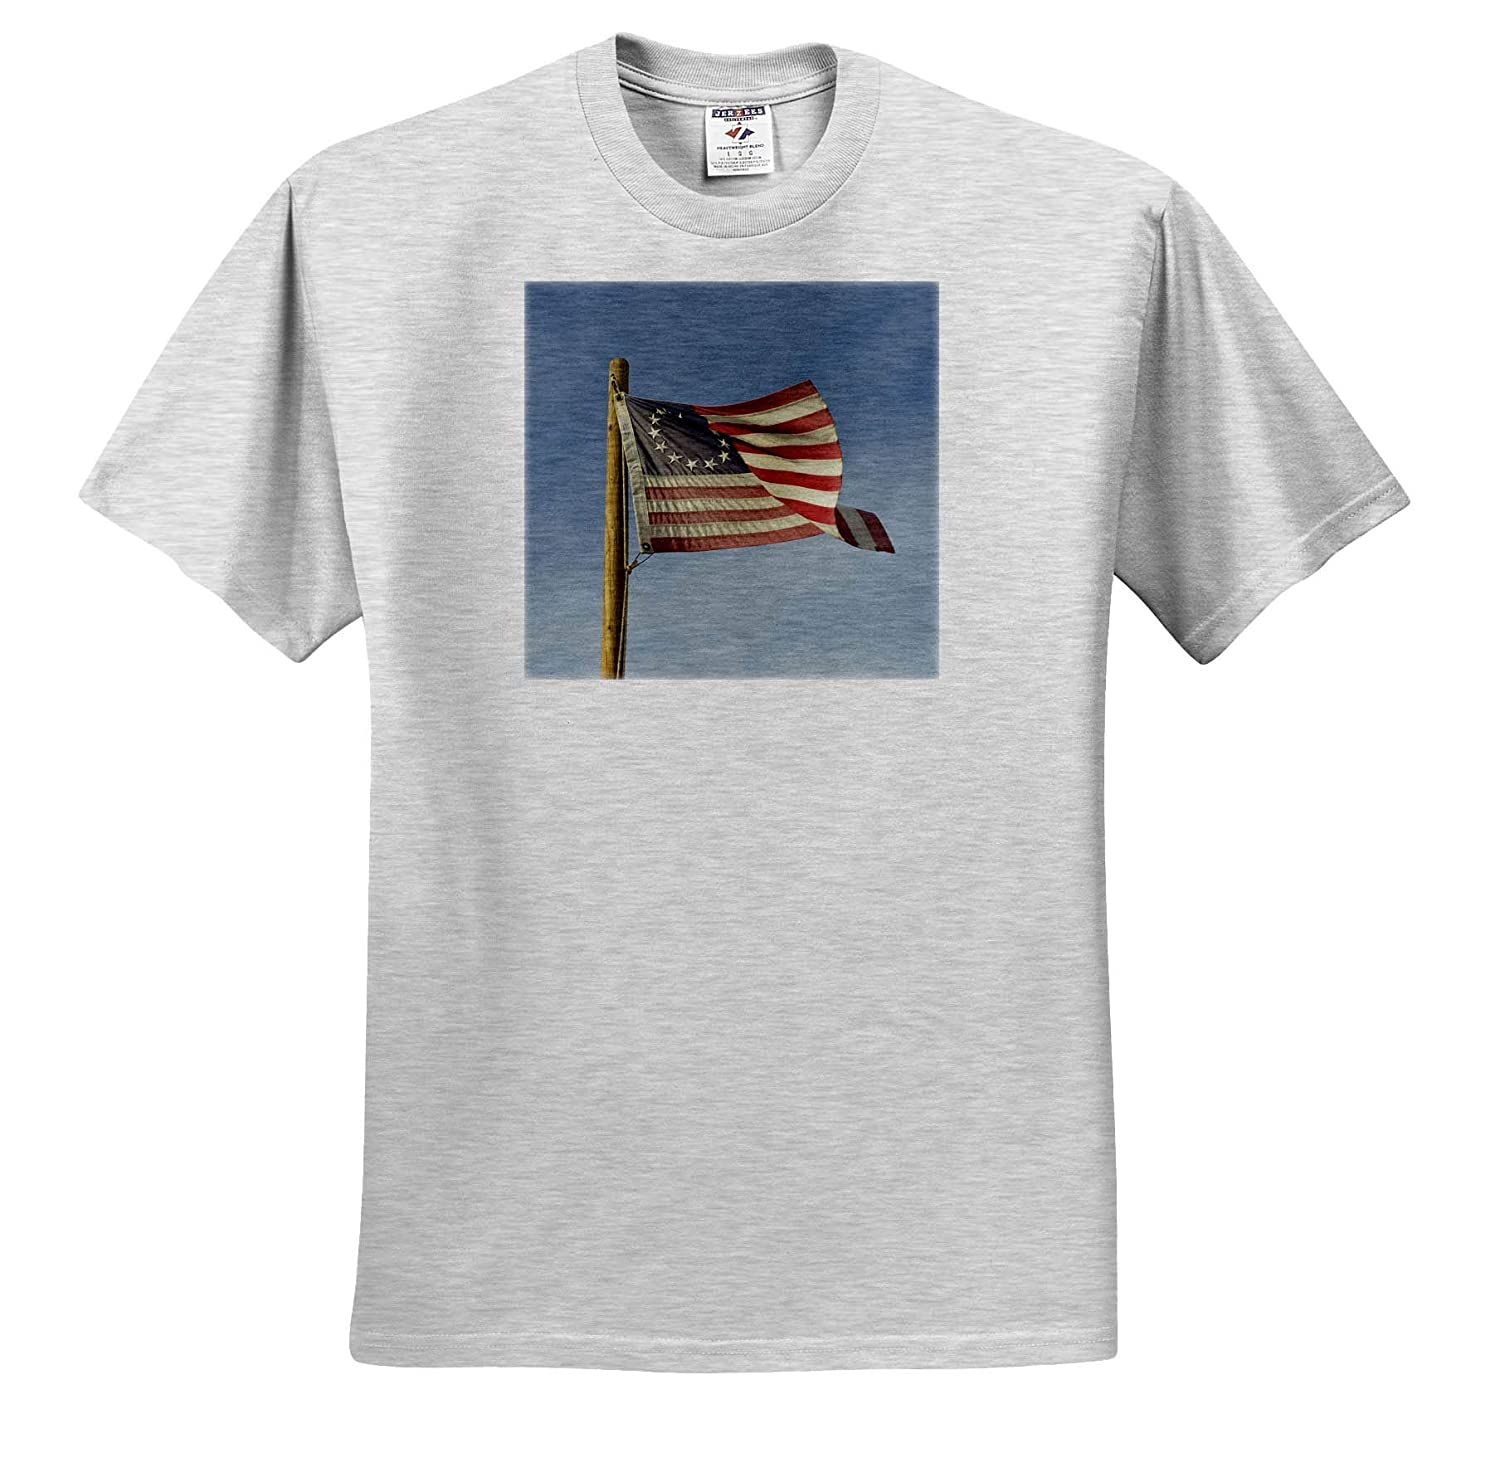 Flags Betsy Ross US Flag Flying in Breeze USA Arizona ts/_314568 3dRose Danita Delimont Adult T-Shirt XL